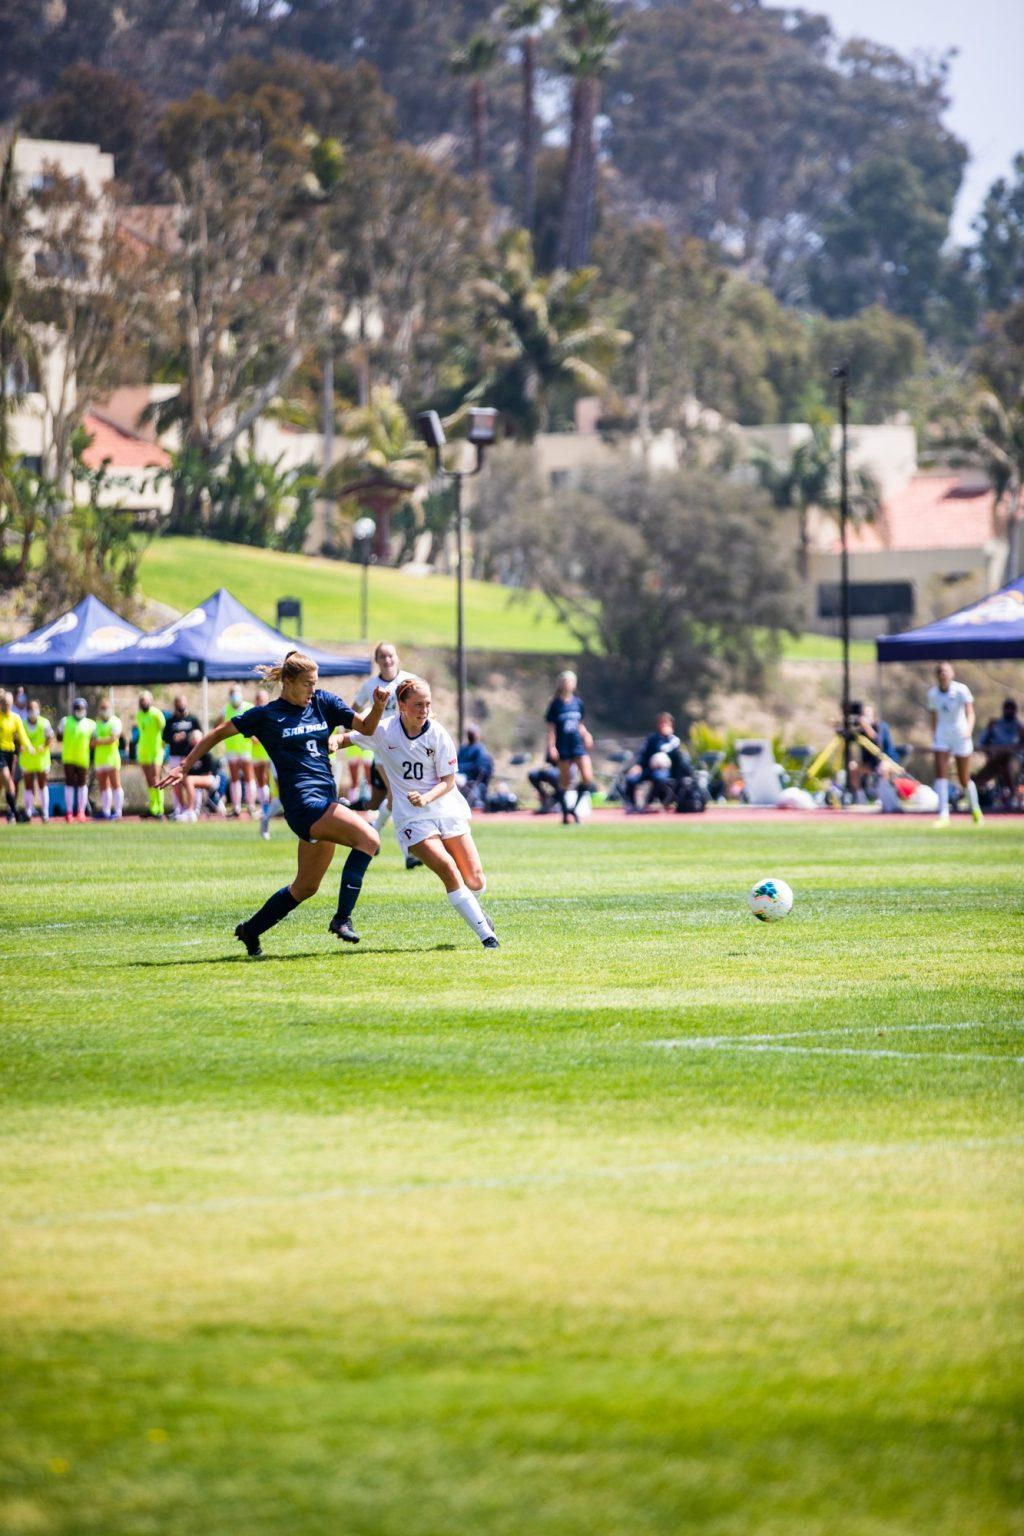 Freshman forward Tori Waldeck delivers a composed finish from the top of the penalty area as San Diego freshman Katie Baxter pursues. Waldeck's goal was Pepperdine's fifth in the first 19 minutes of the match and her fourth of the season.